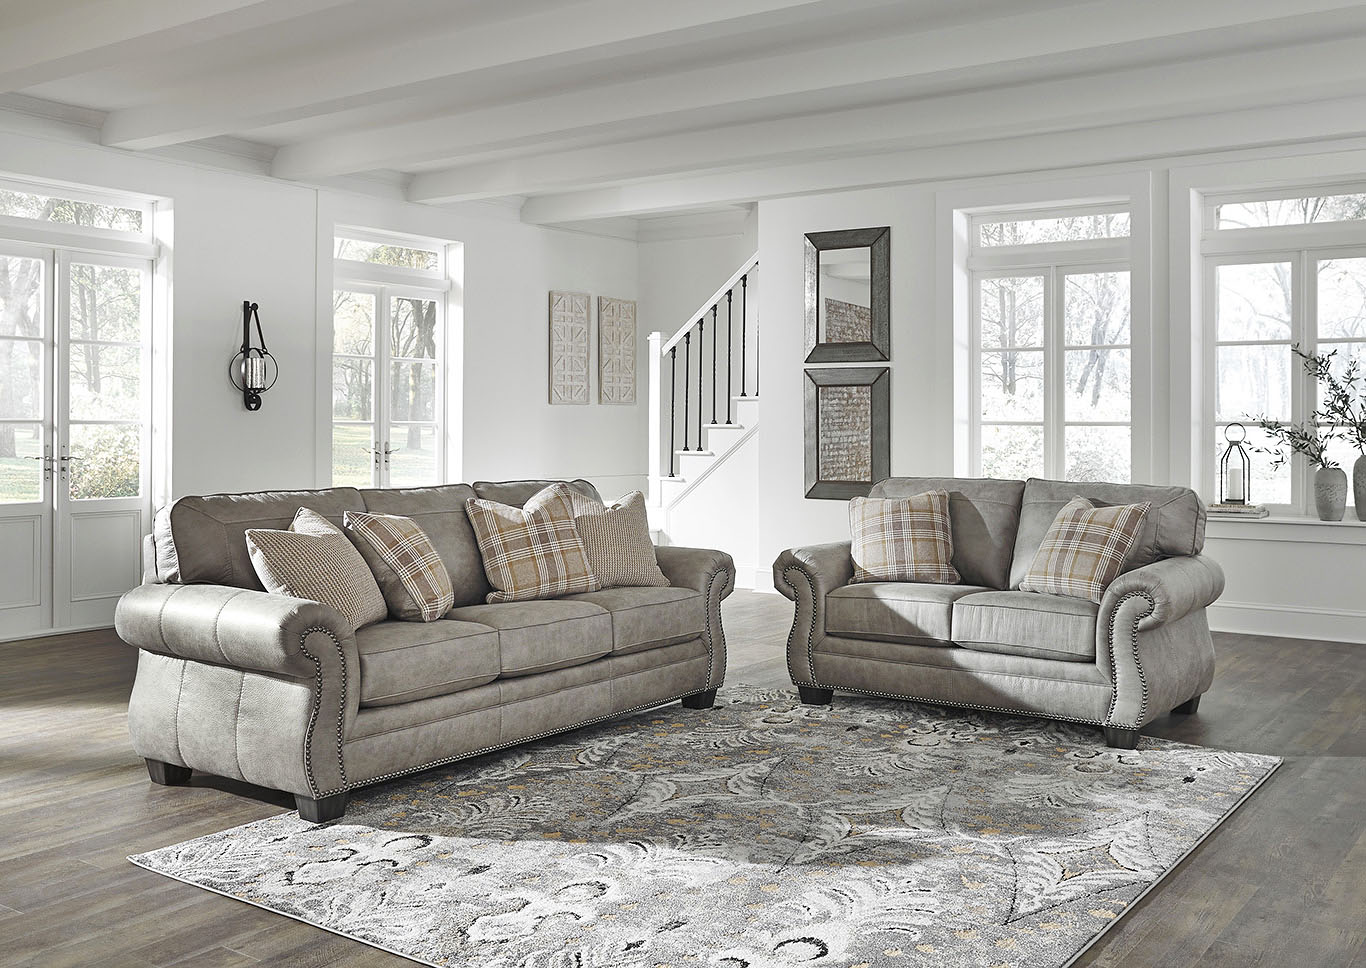 Olsberg Steel Sofa & Loveseat,Signature Design By Ashley